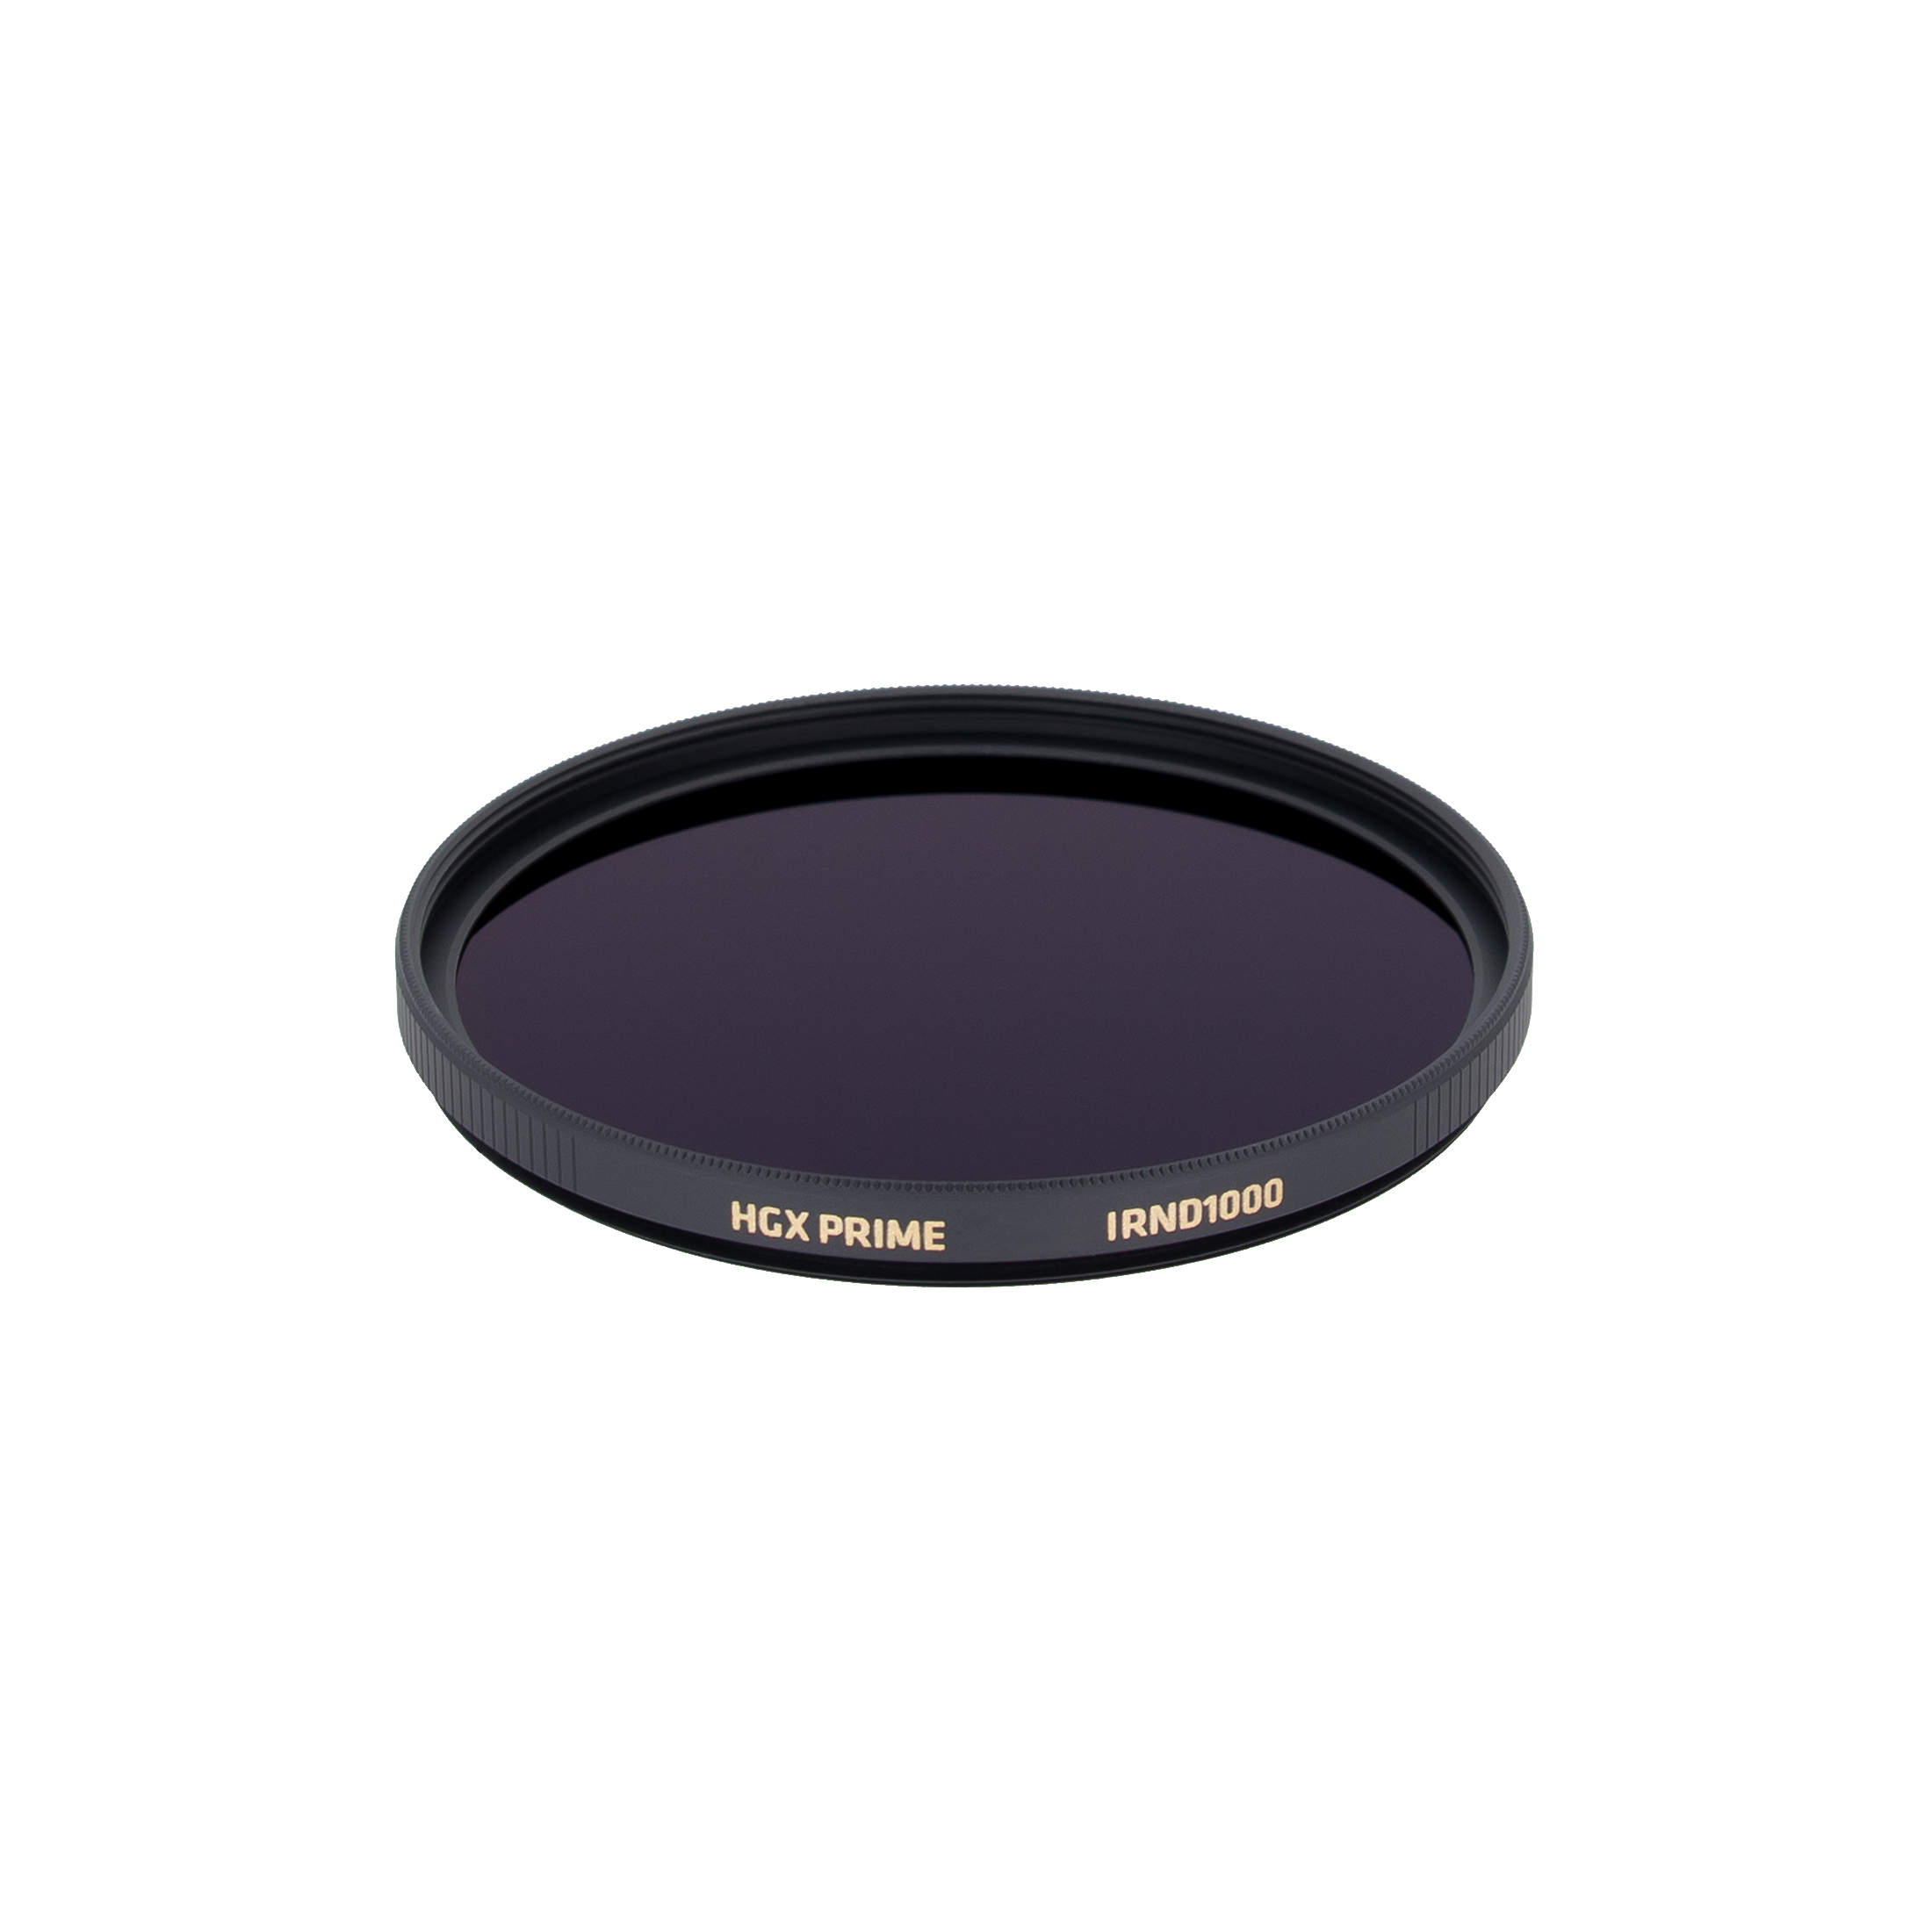 Promaster 5977 62mm IRND1000X HGX Prime Filter